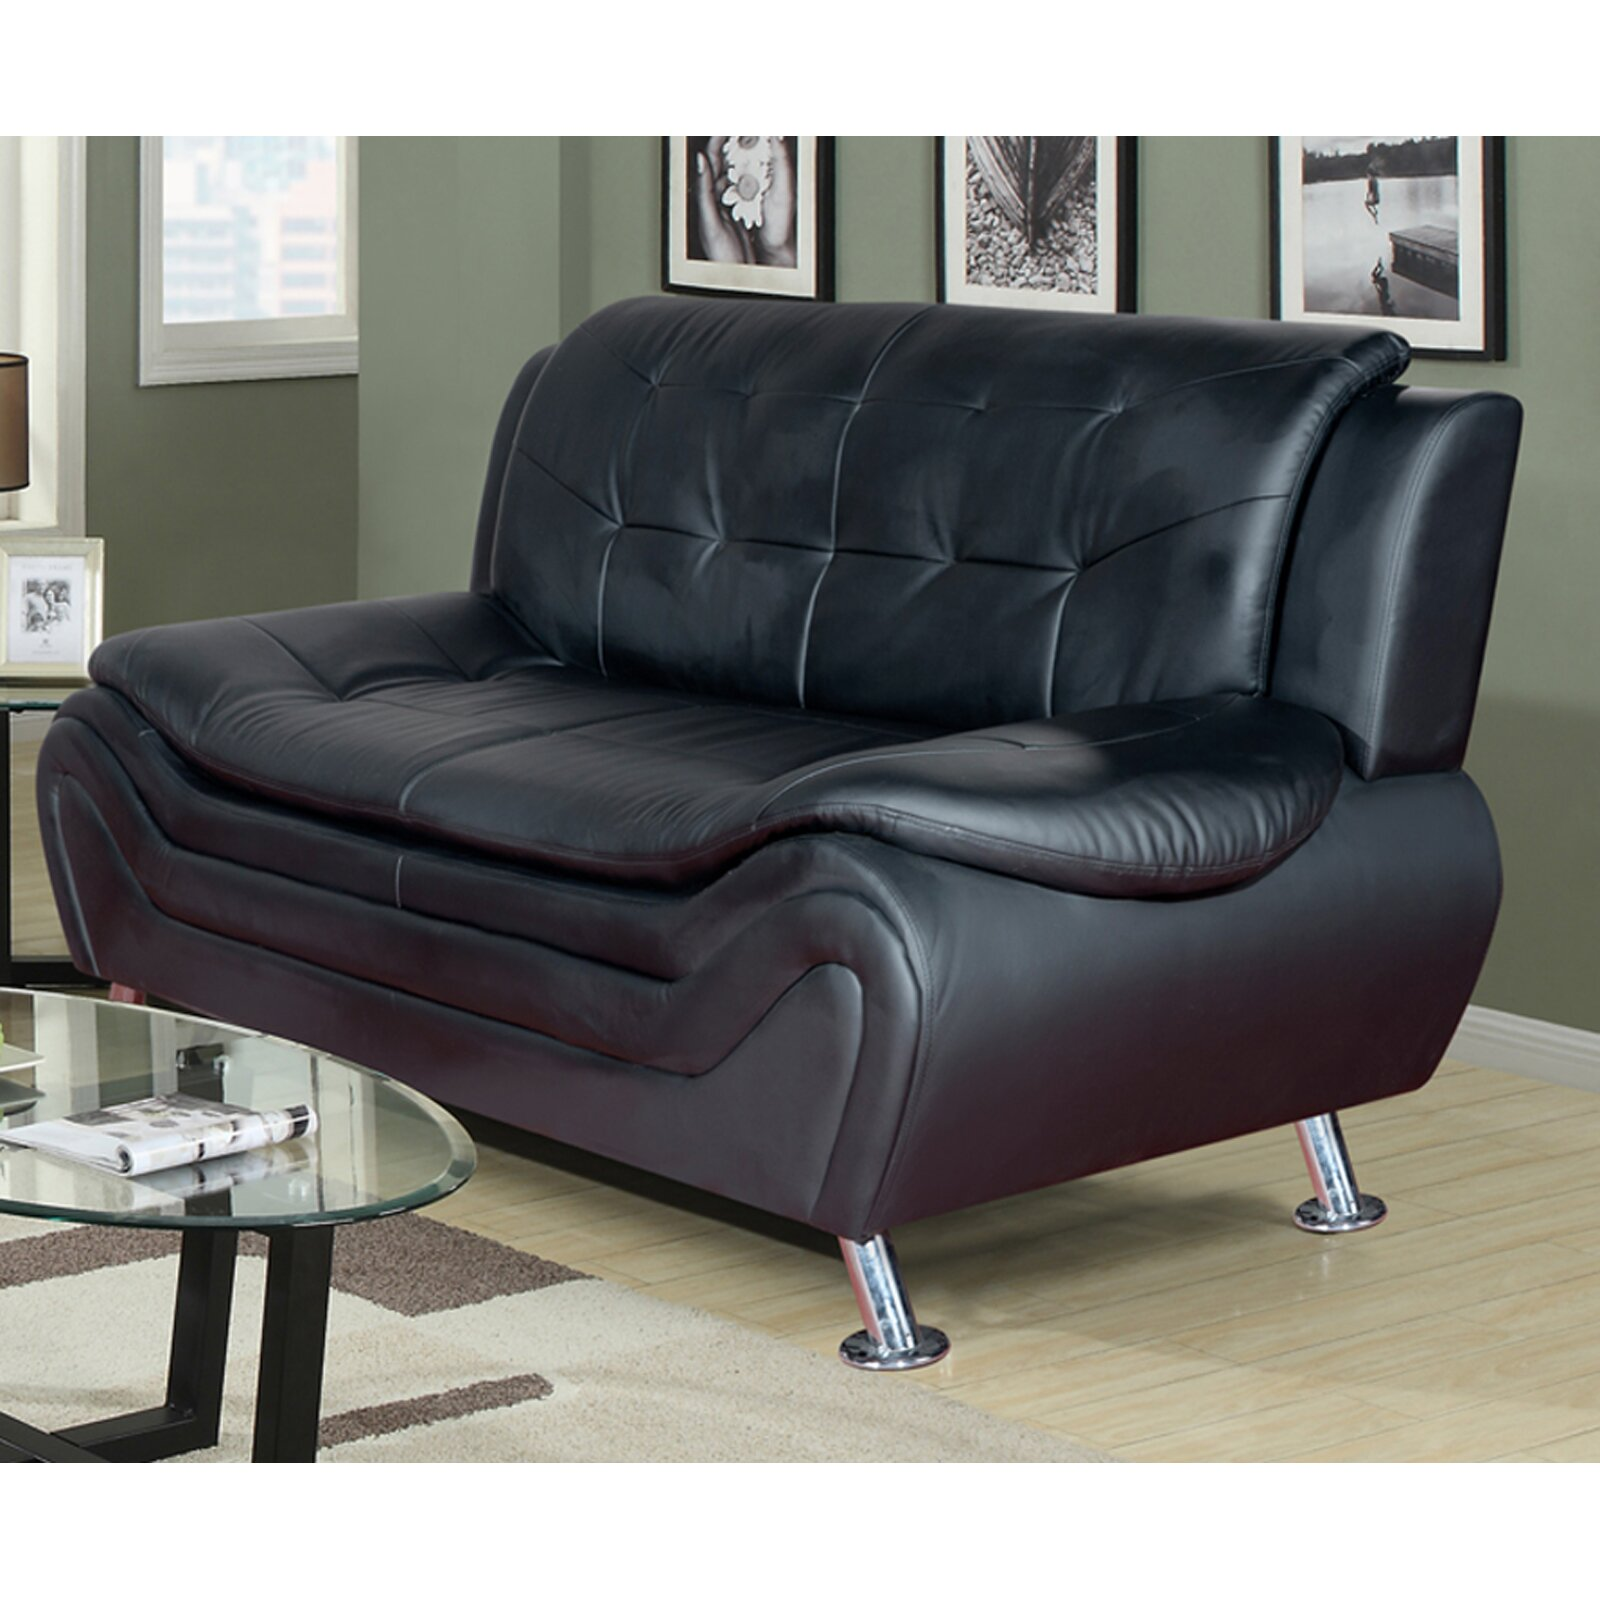 Beverly Fine Furniture Linda Leather Sofa Reviews Wayfair